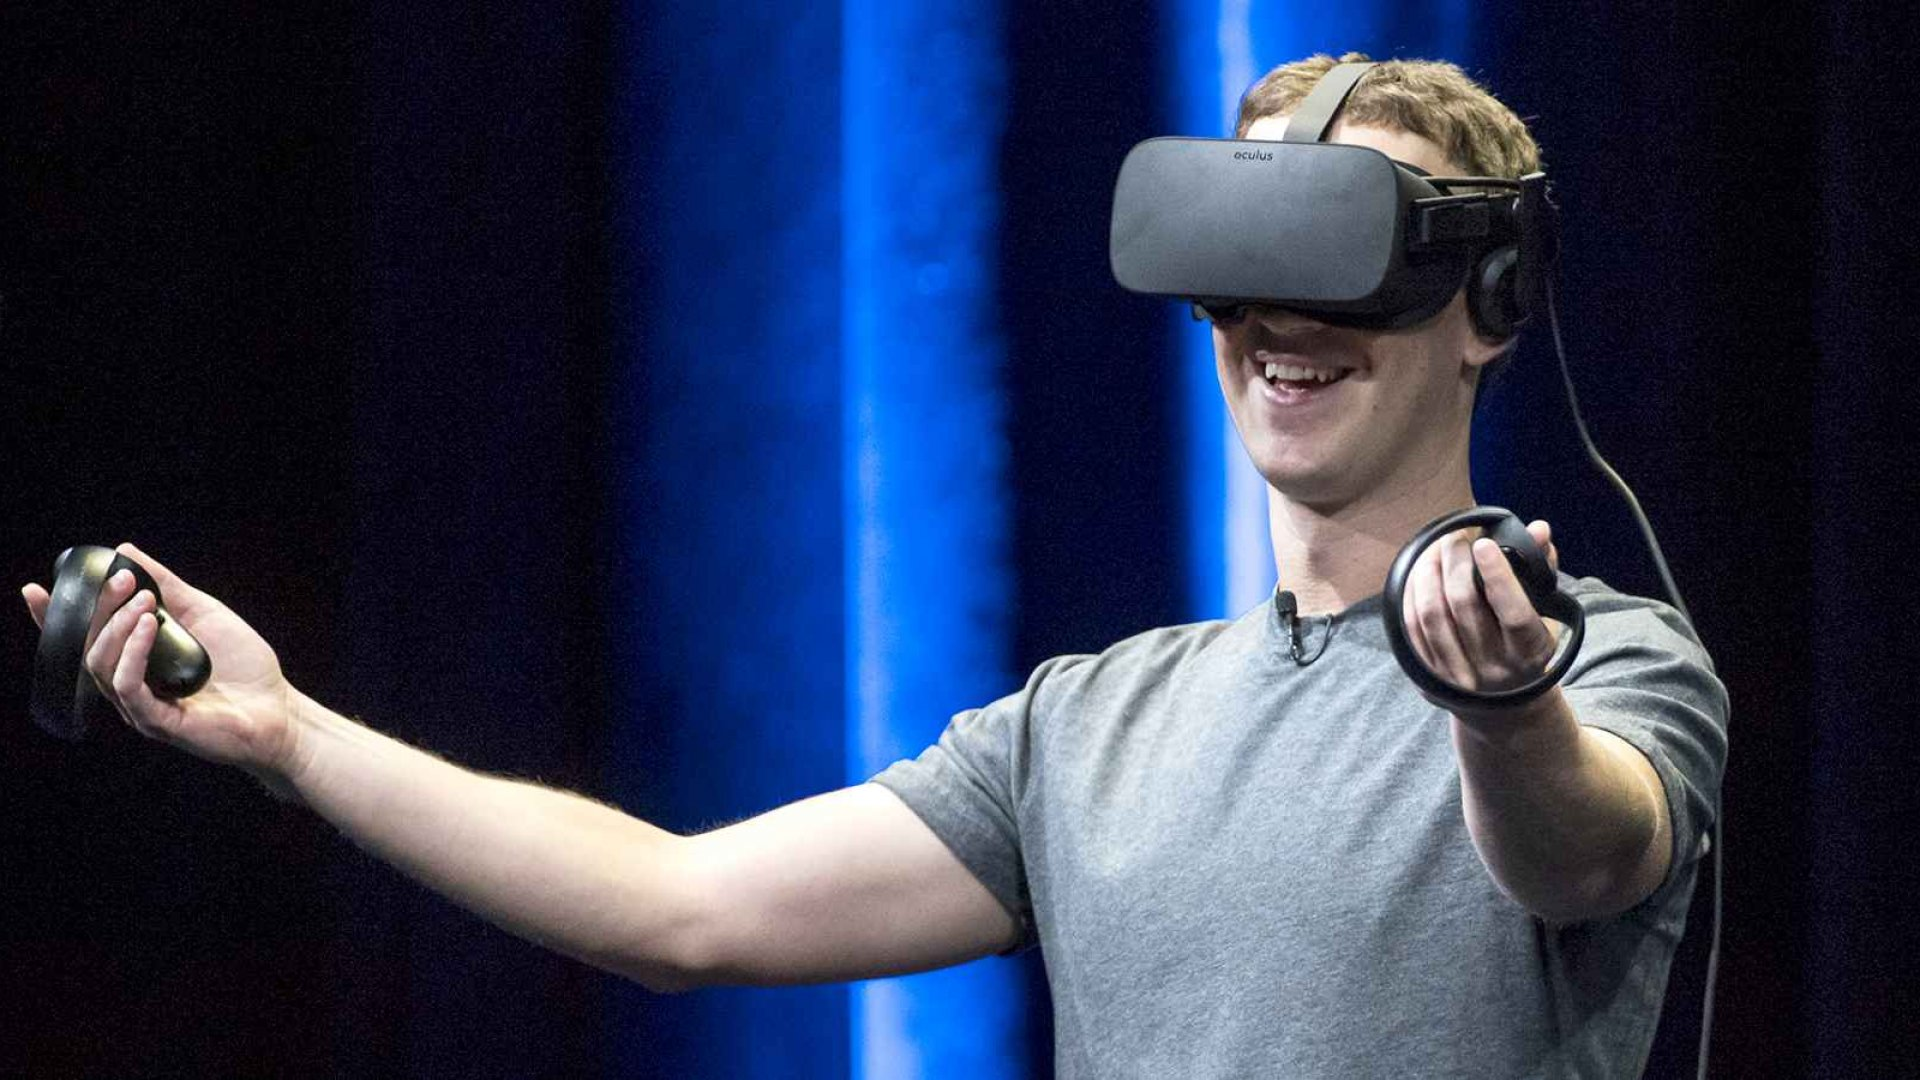 Mark Zuckerberg, chief executive officer and founder of Facebook Inc., demonstrates an Oculus Rift virtual reality headset and Oculus Touch controllers.